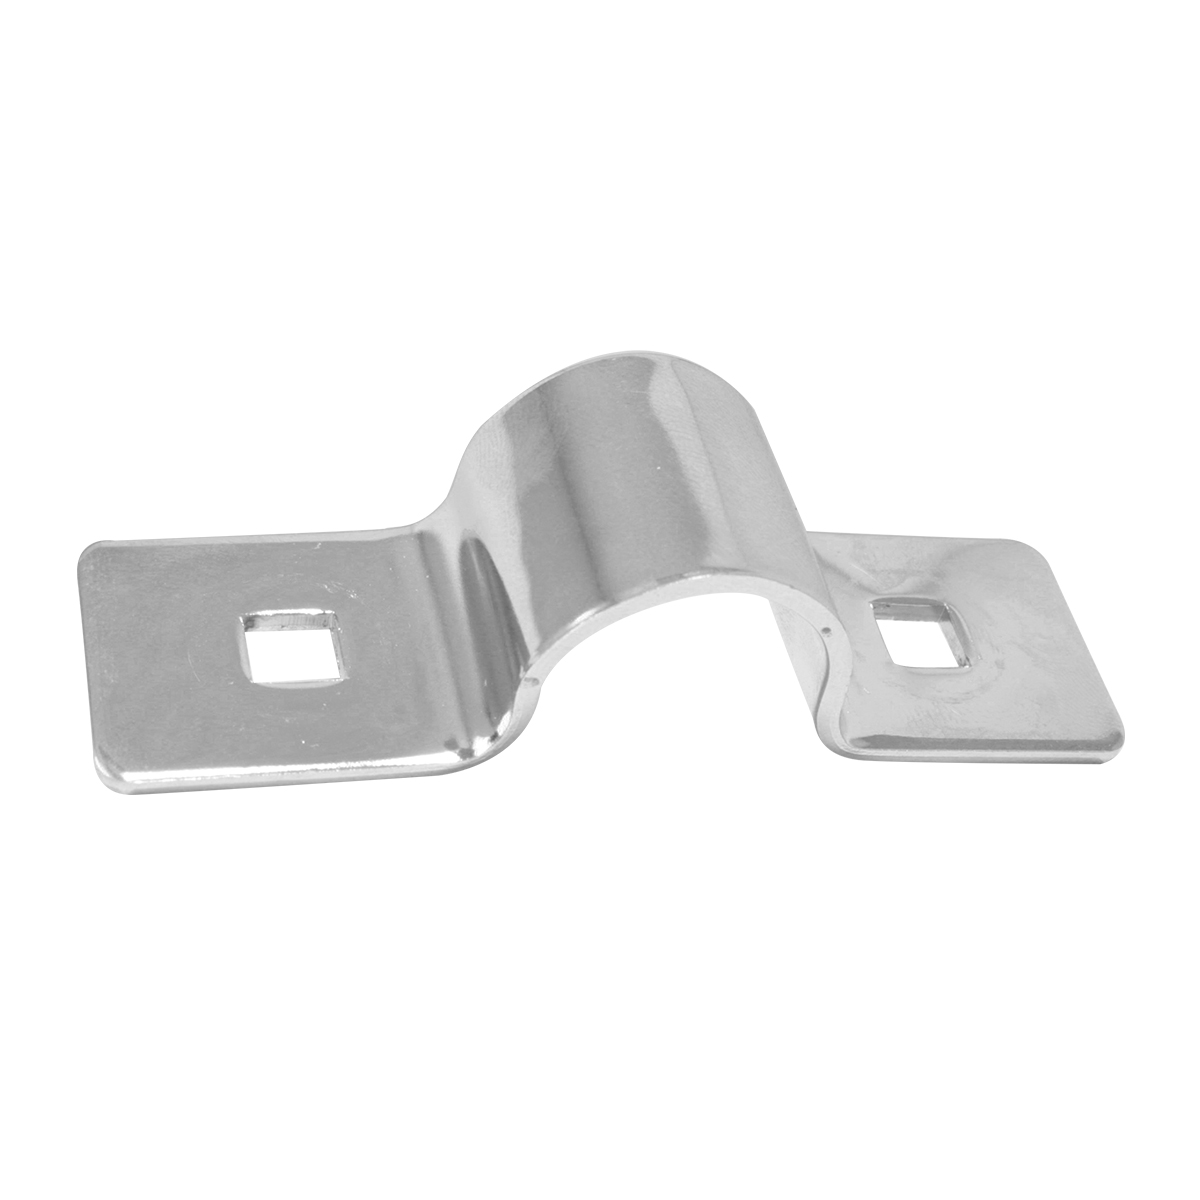 #94147 Stainless Steel Bumper Guide Bracket Kit For Plastic Bumper - Front View